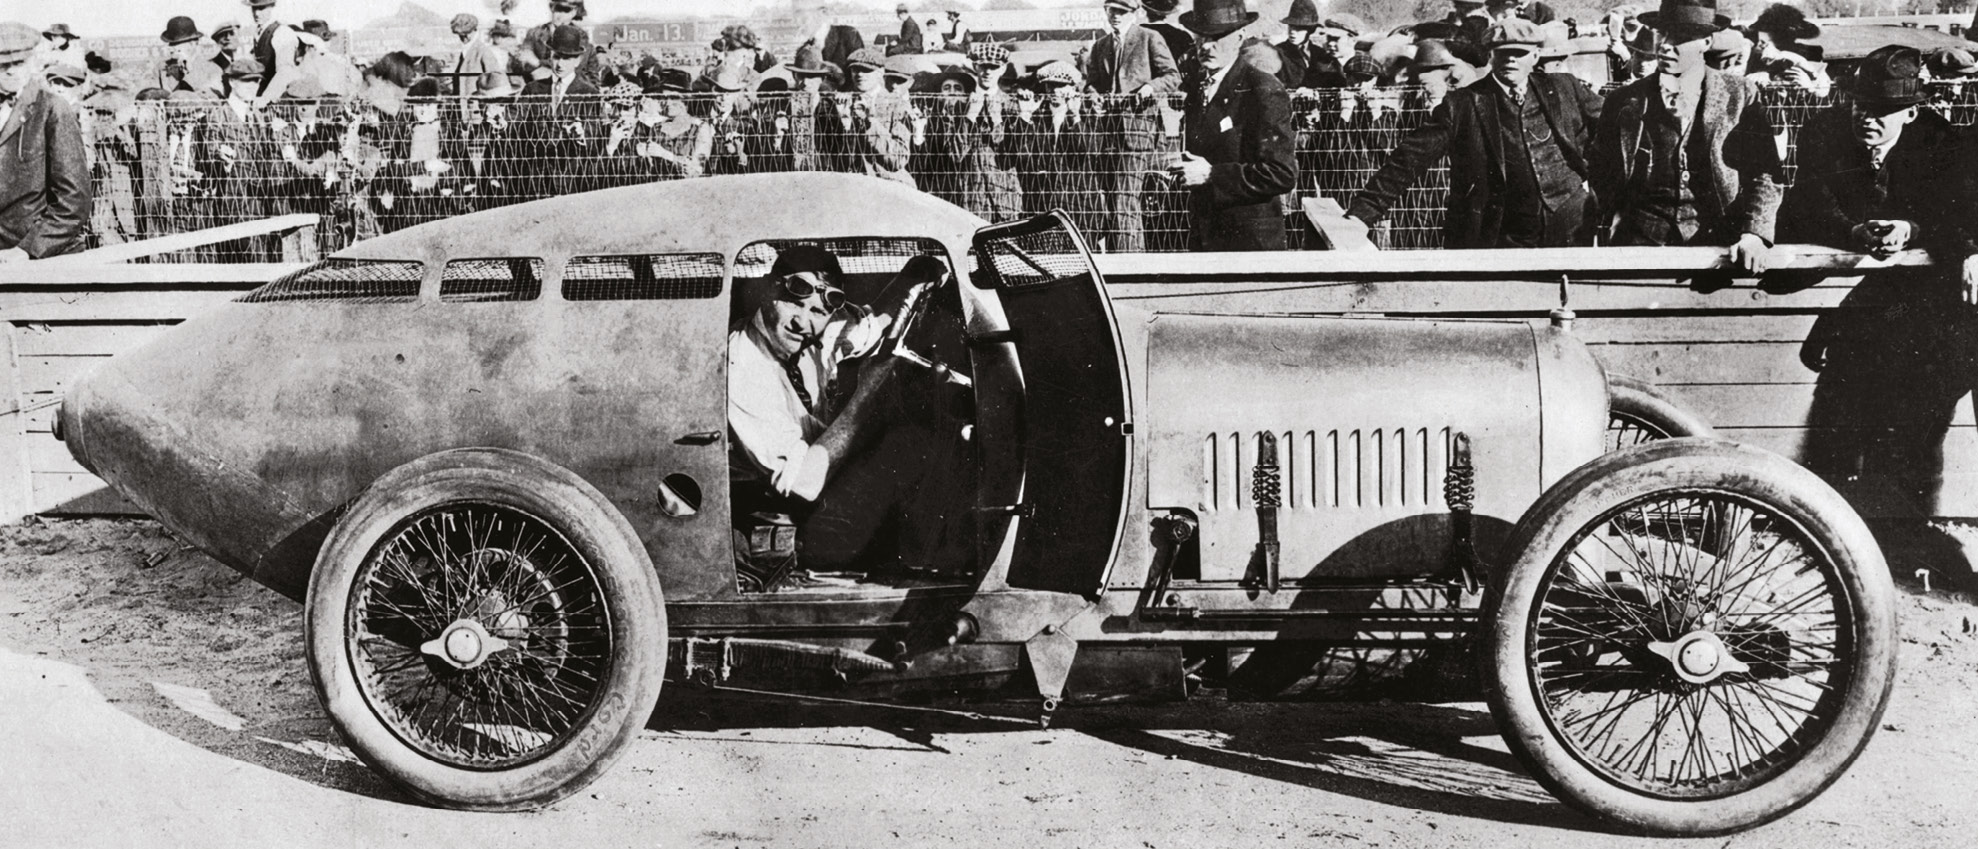 Oldfield at the wheel of the Golden Submarine during a promotional event at Daytona in 1922